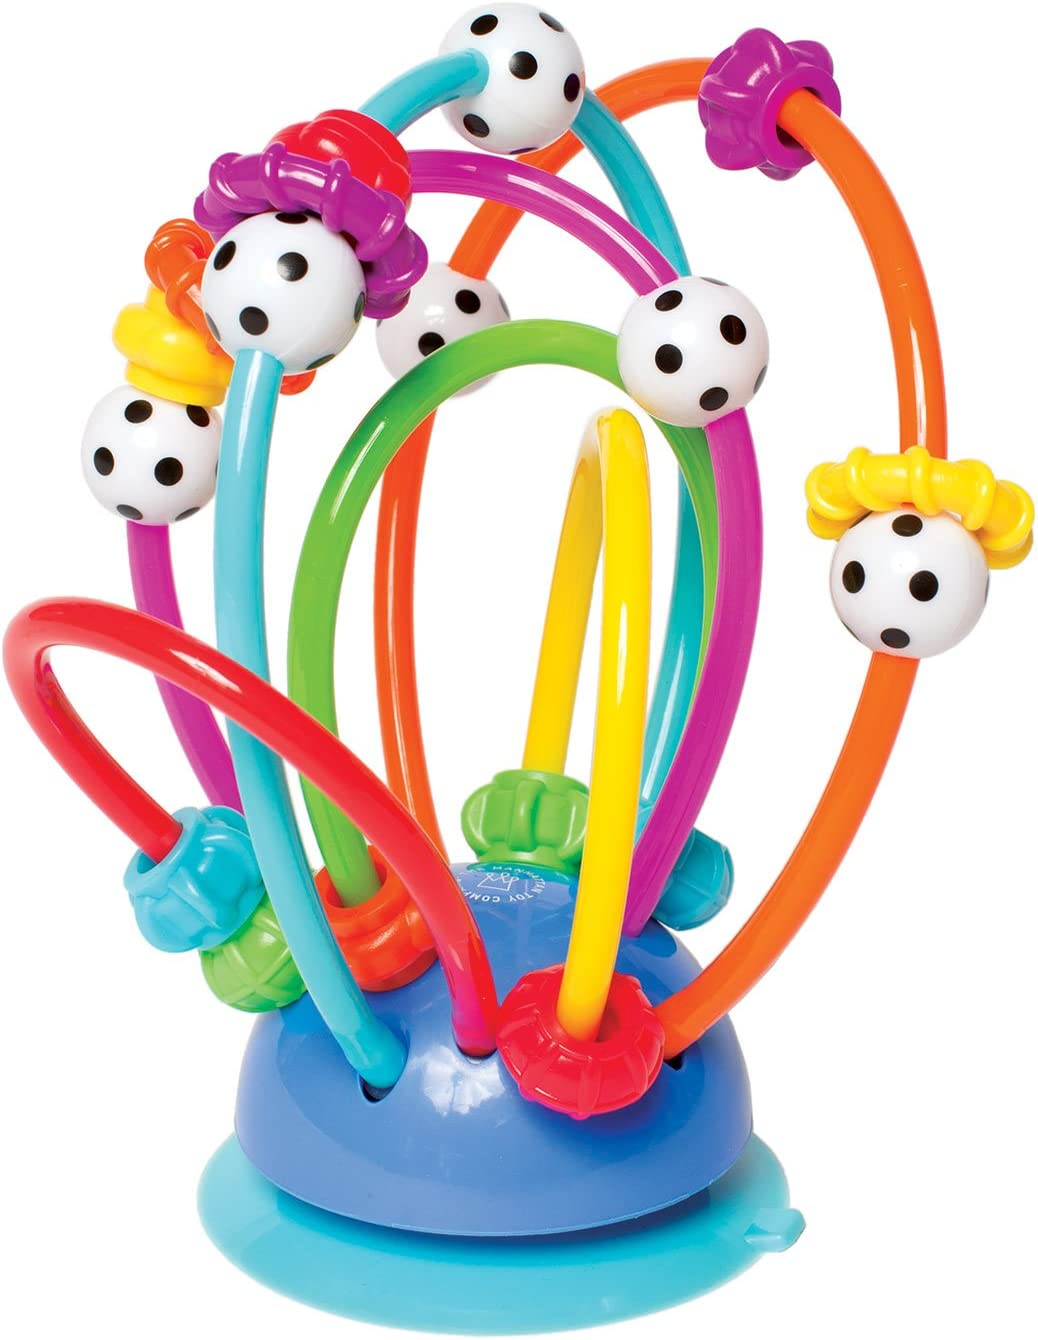 Manhattan Toy Activity Loops Baby Development Max 59% OFF Early 55% OFF